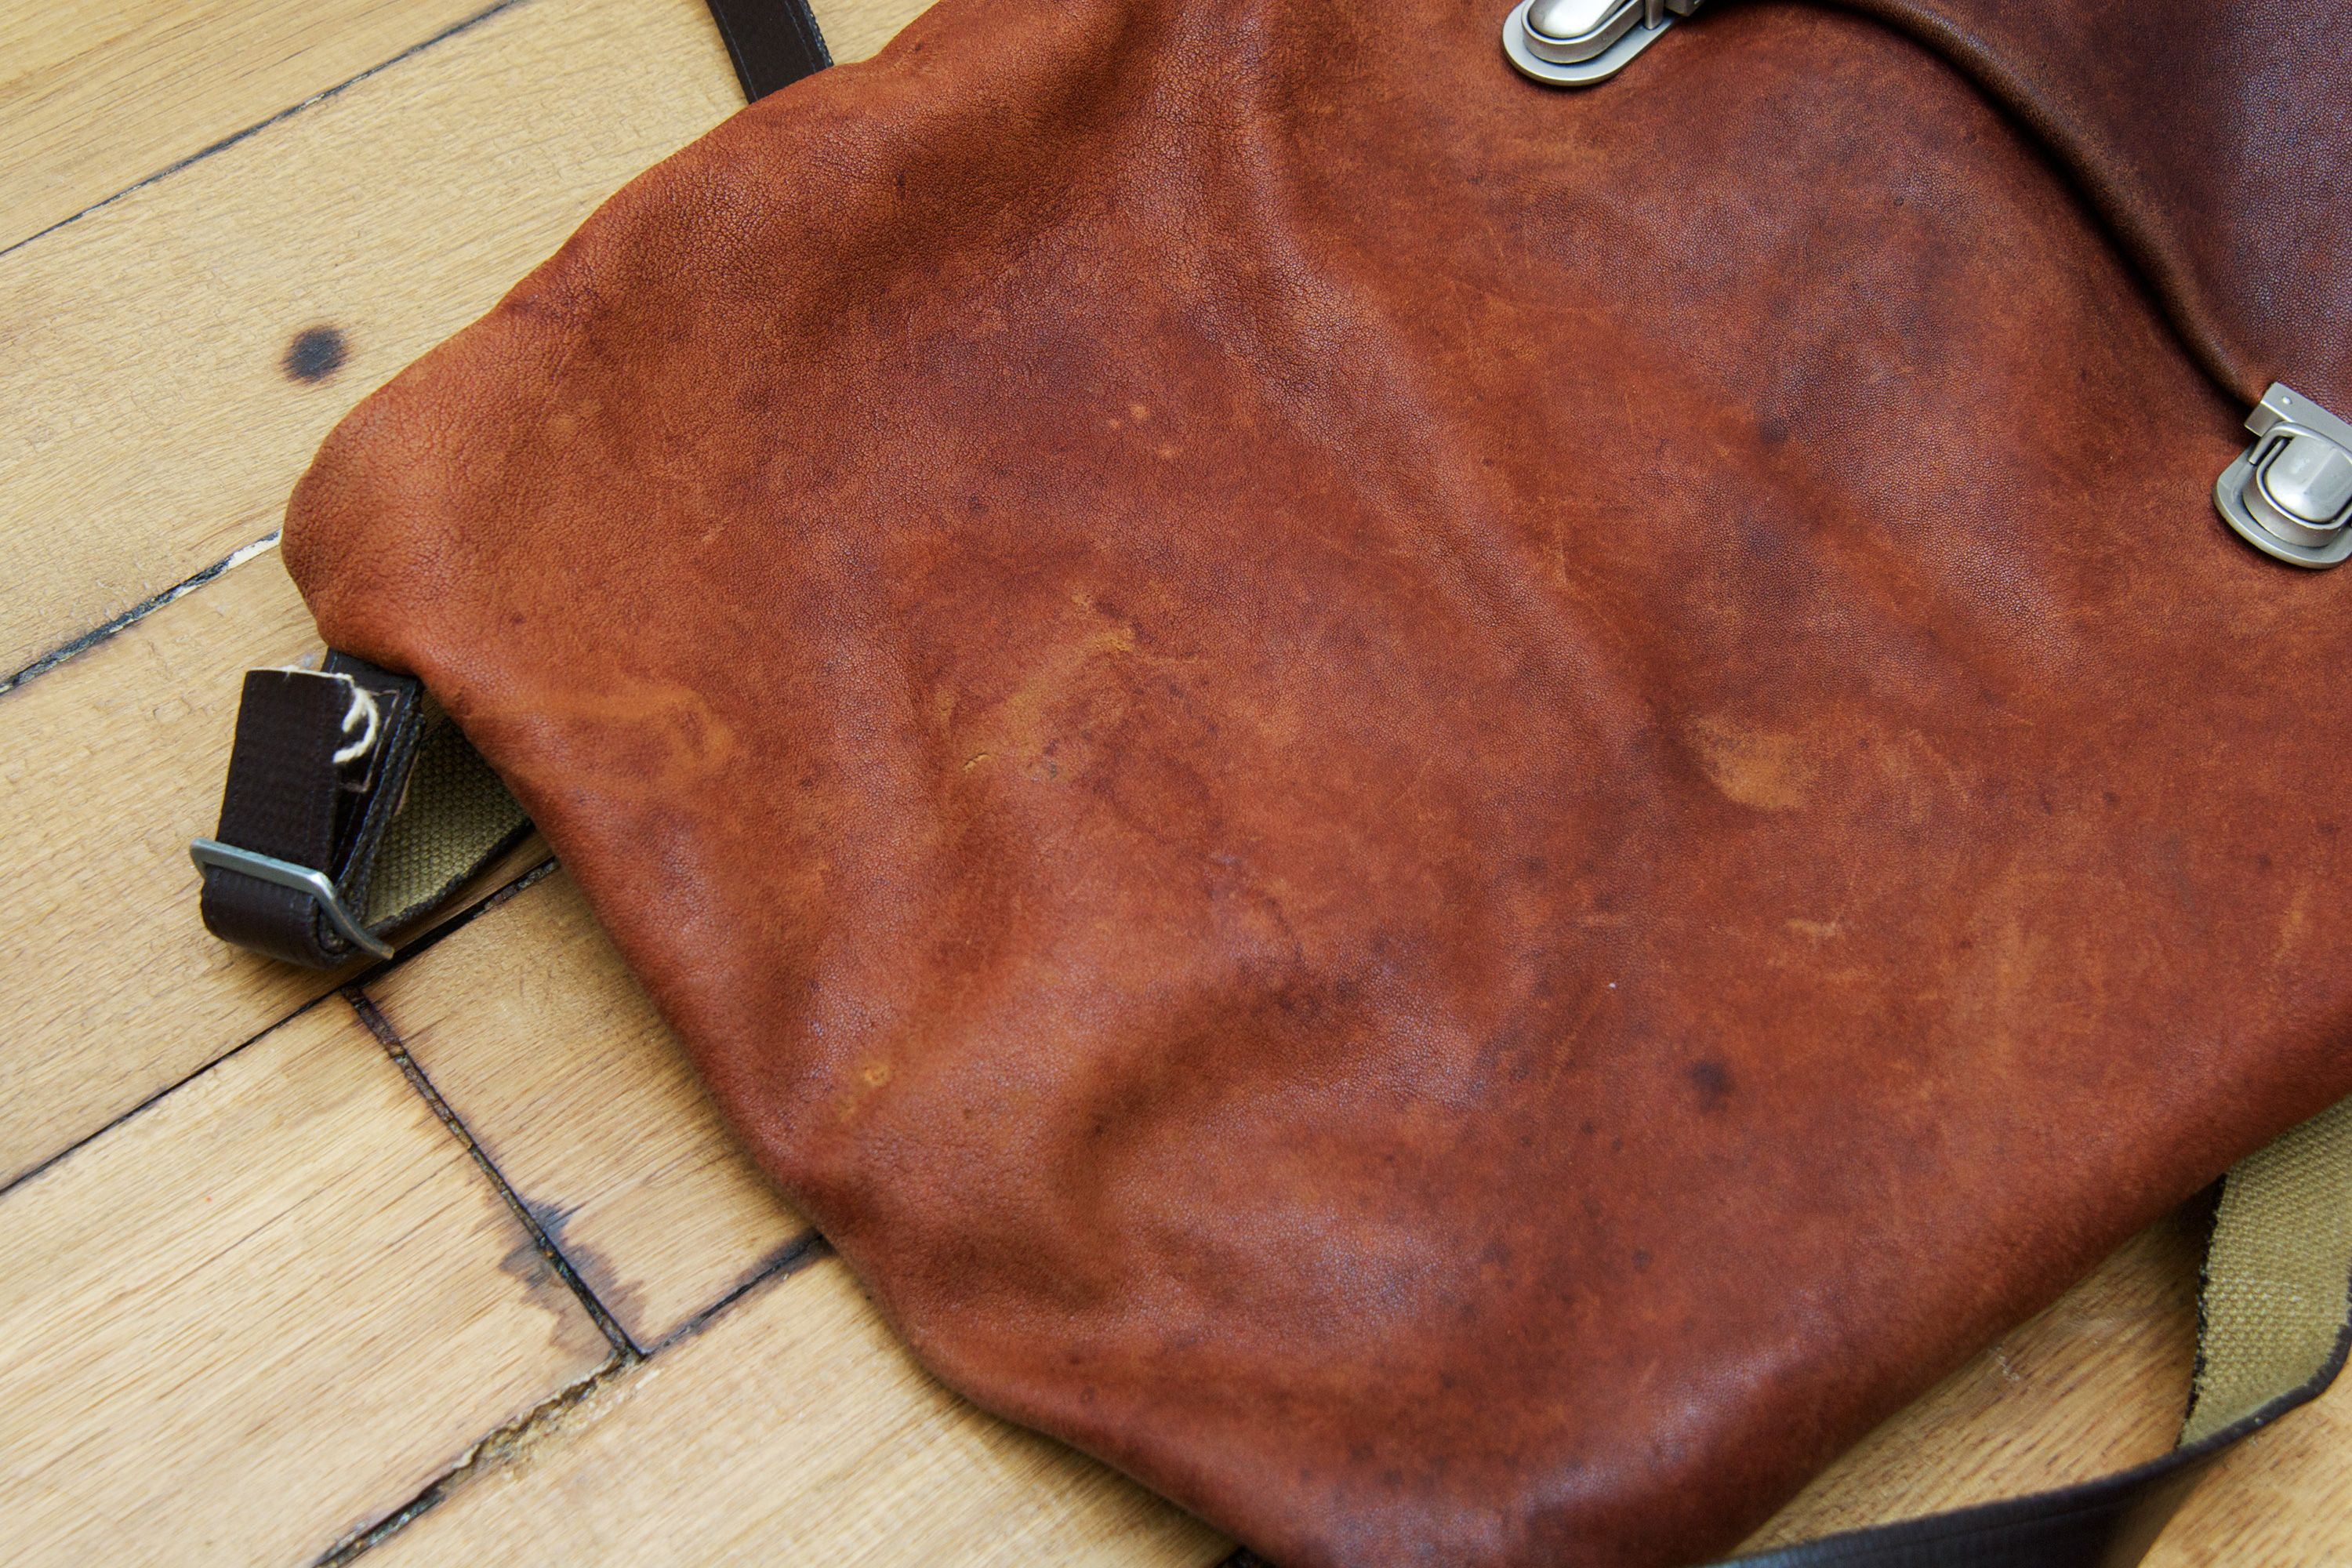 How to clean water spots off leather clean leather purse